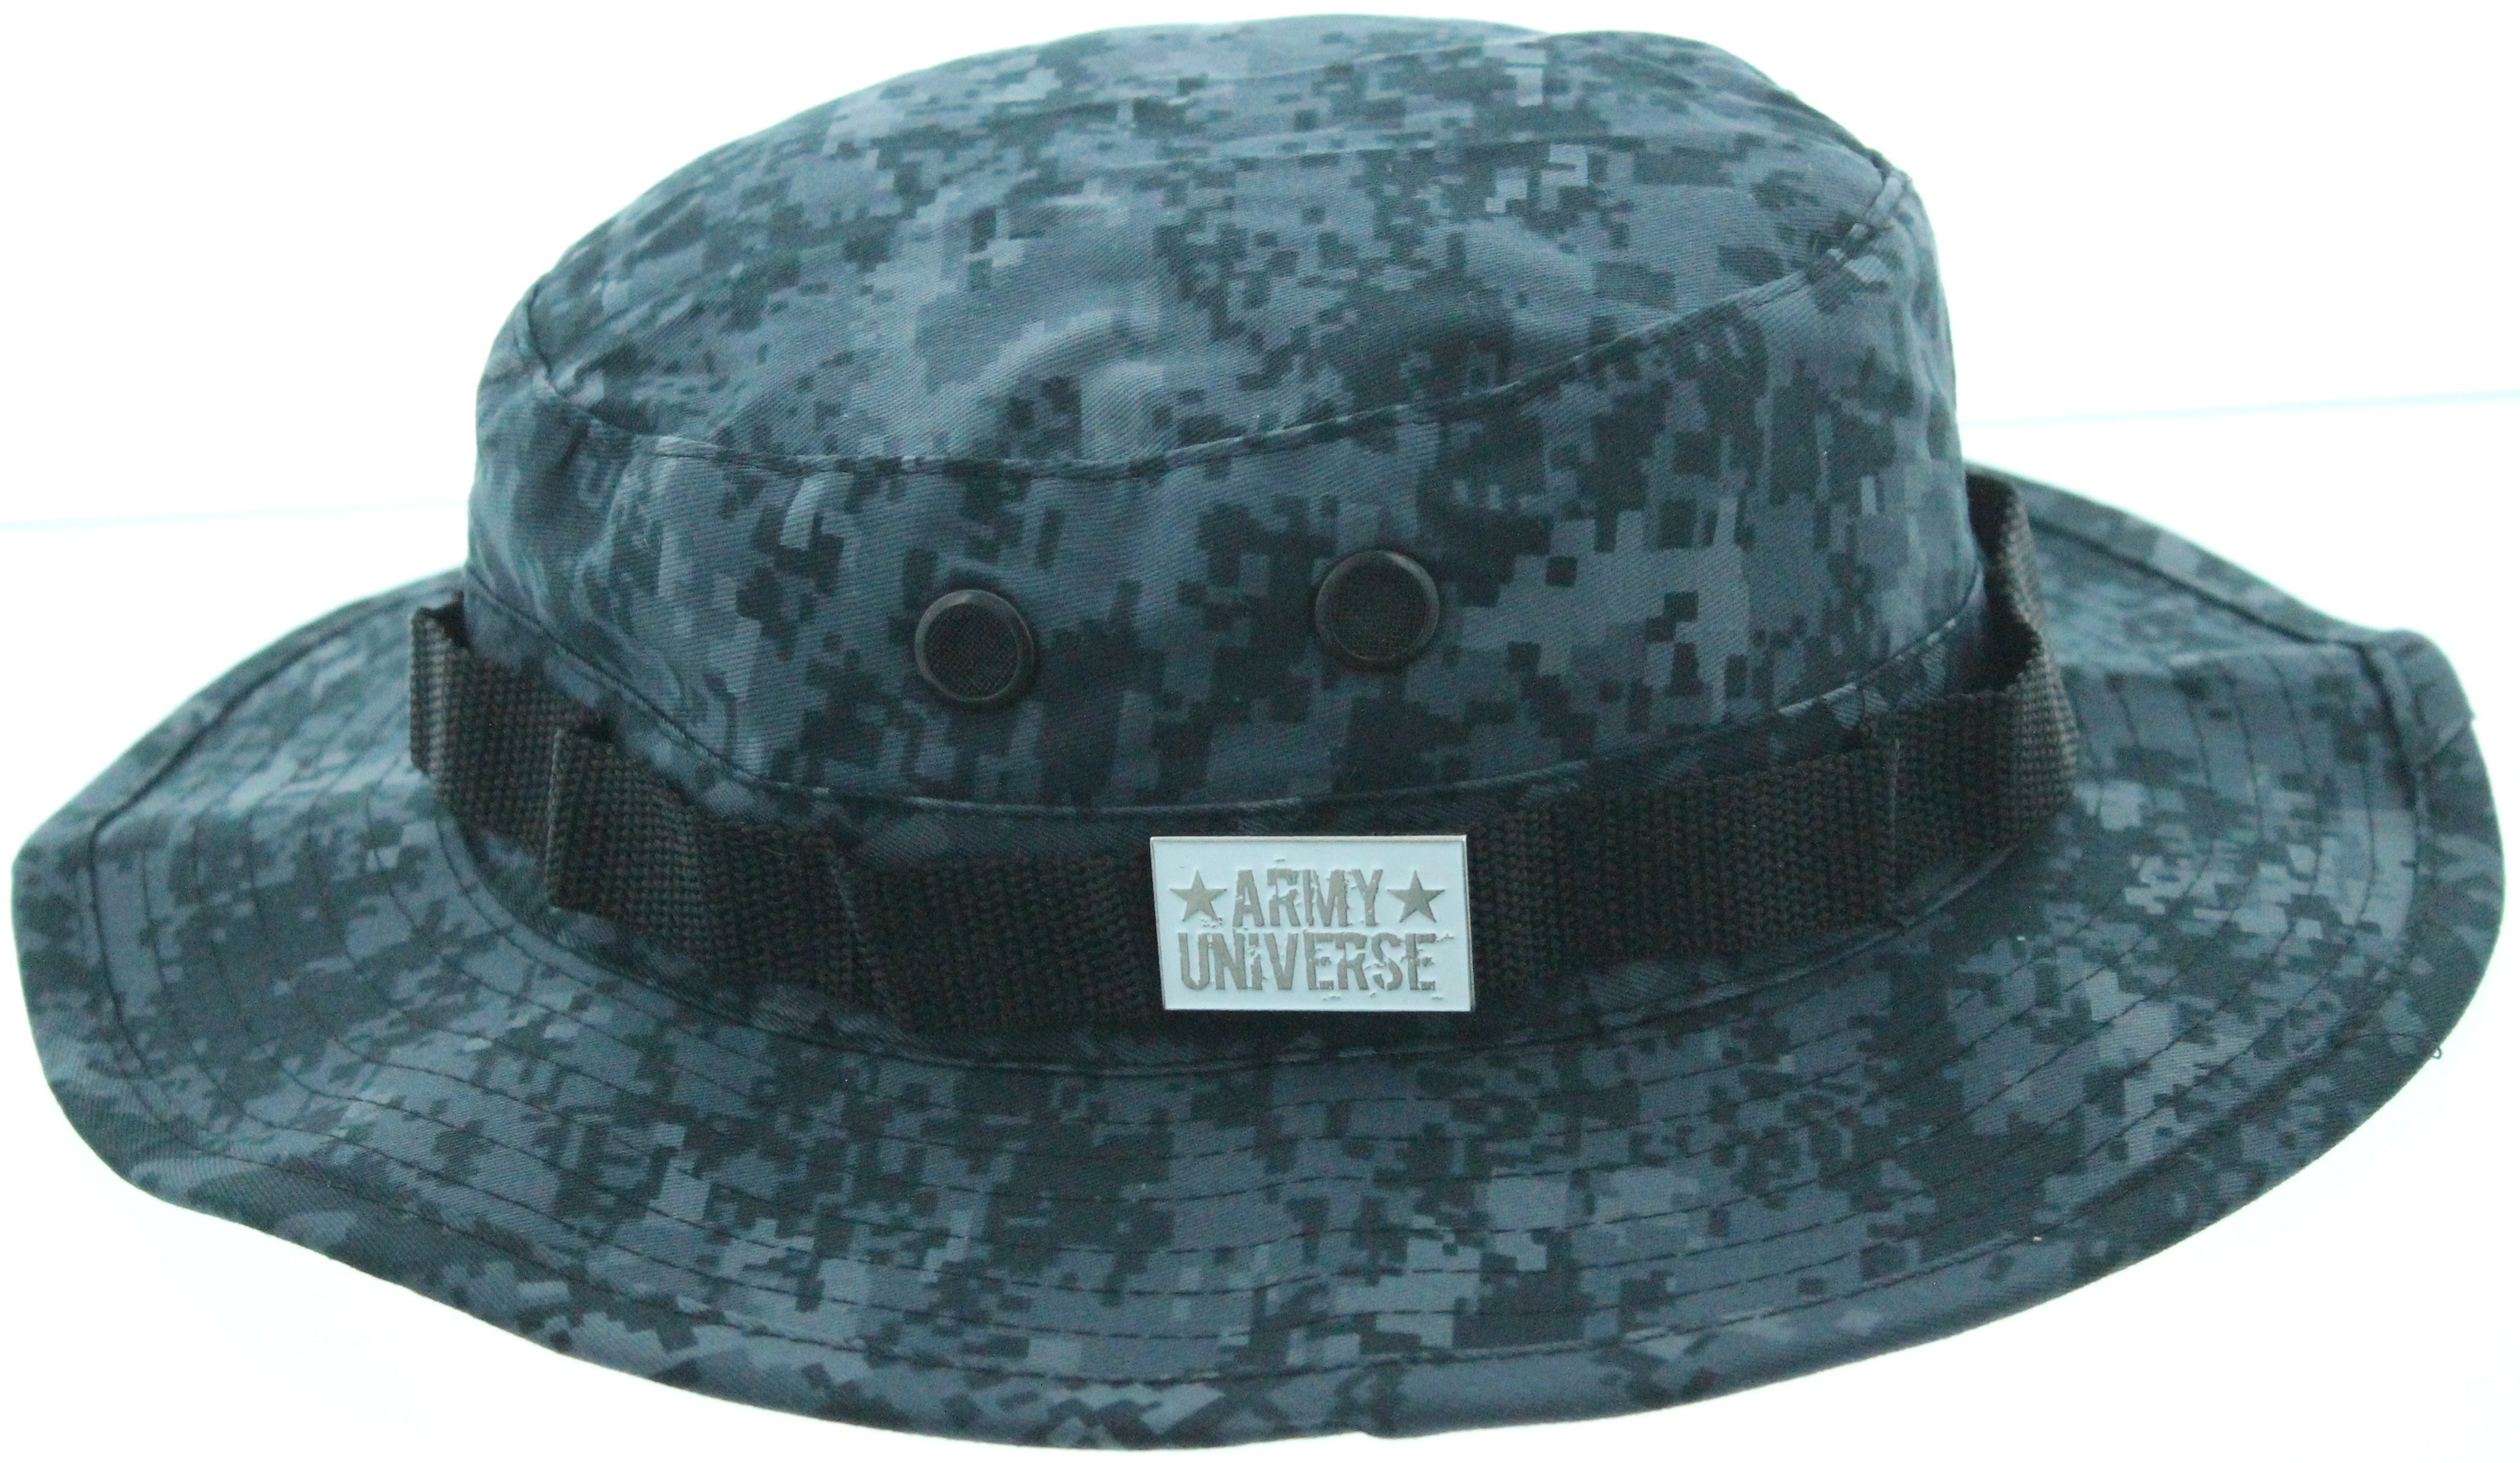 7b783192129 ... Midnight Digital Camouflage Boonie Hat with ARMY UNIVERSE Pin ...